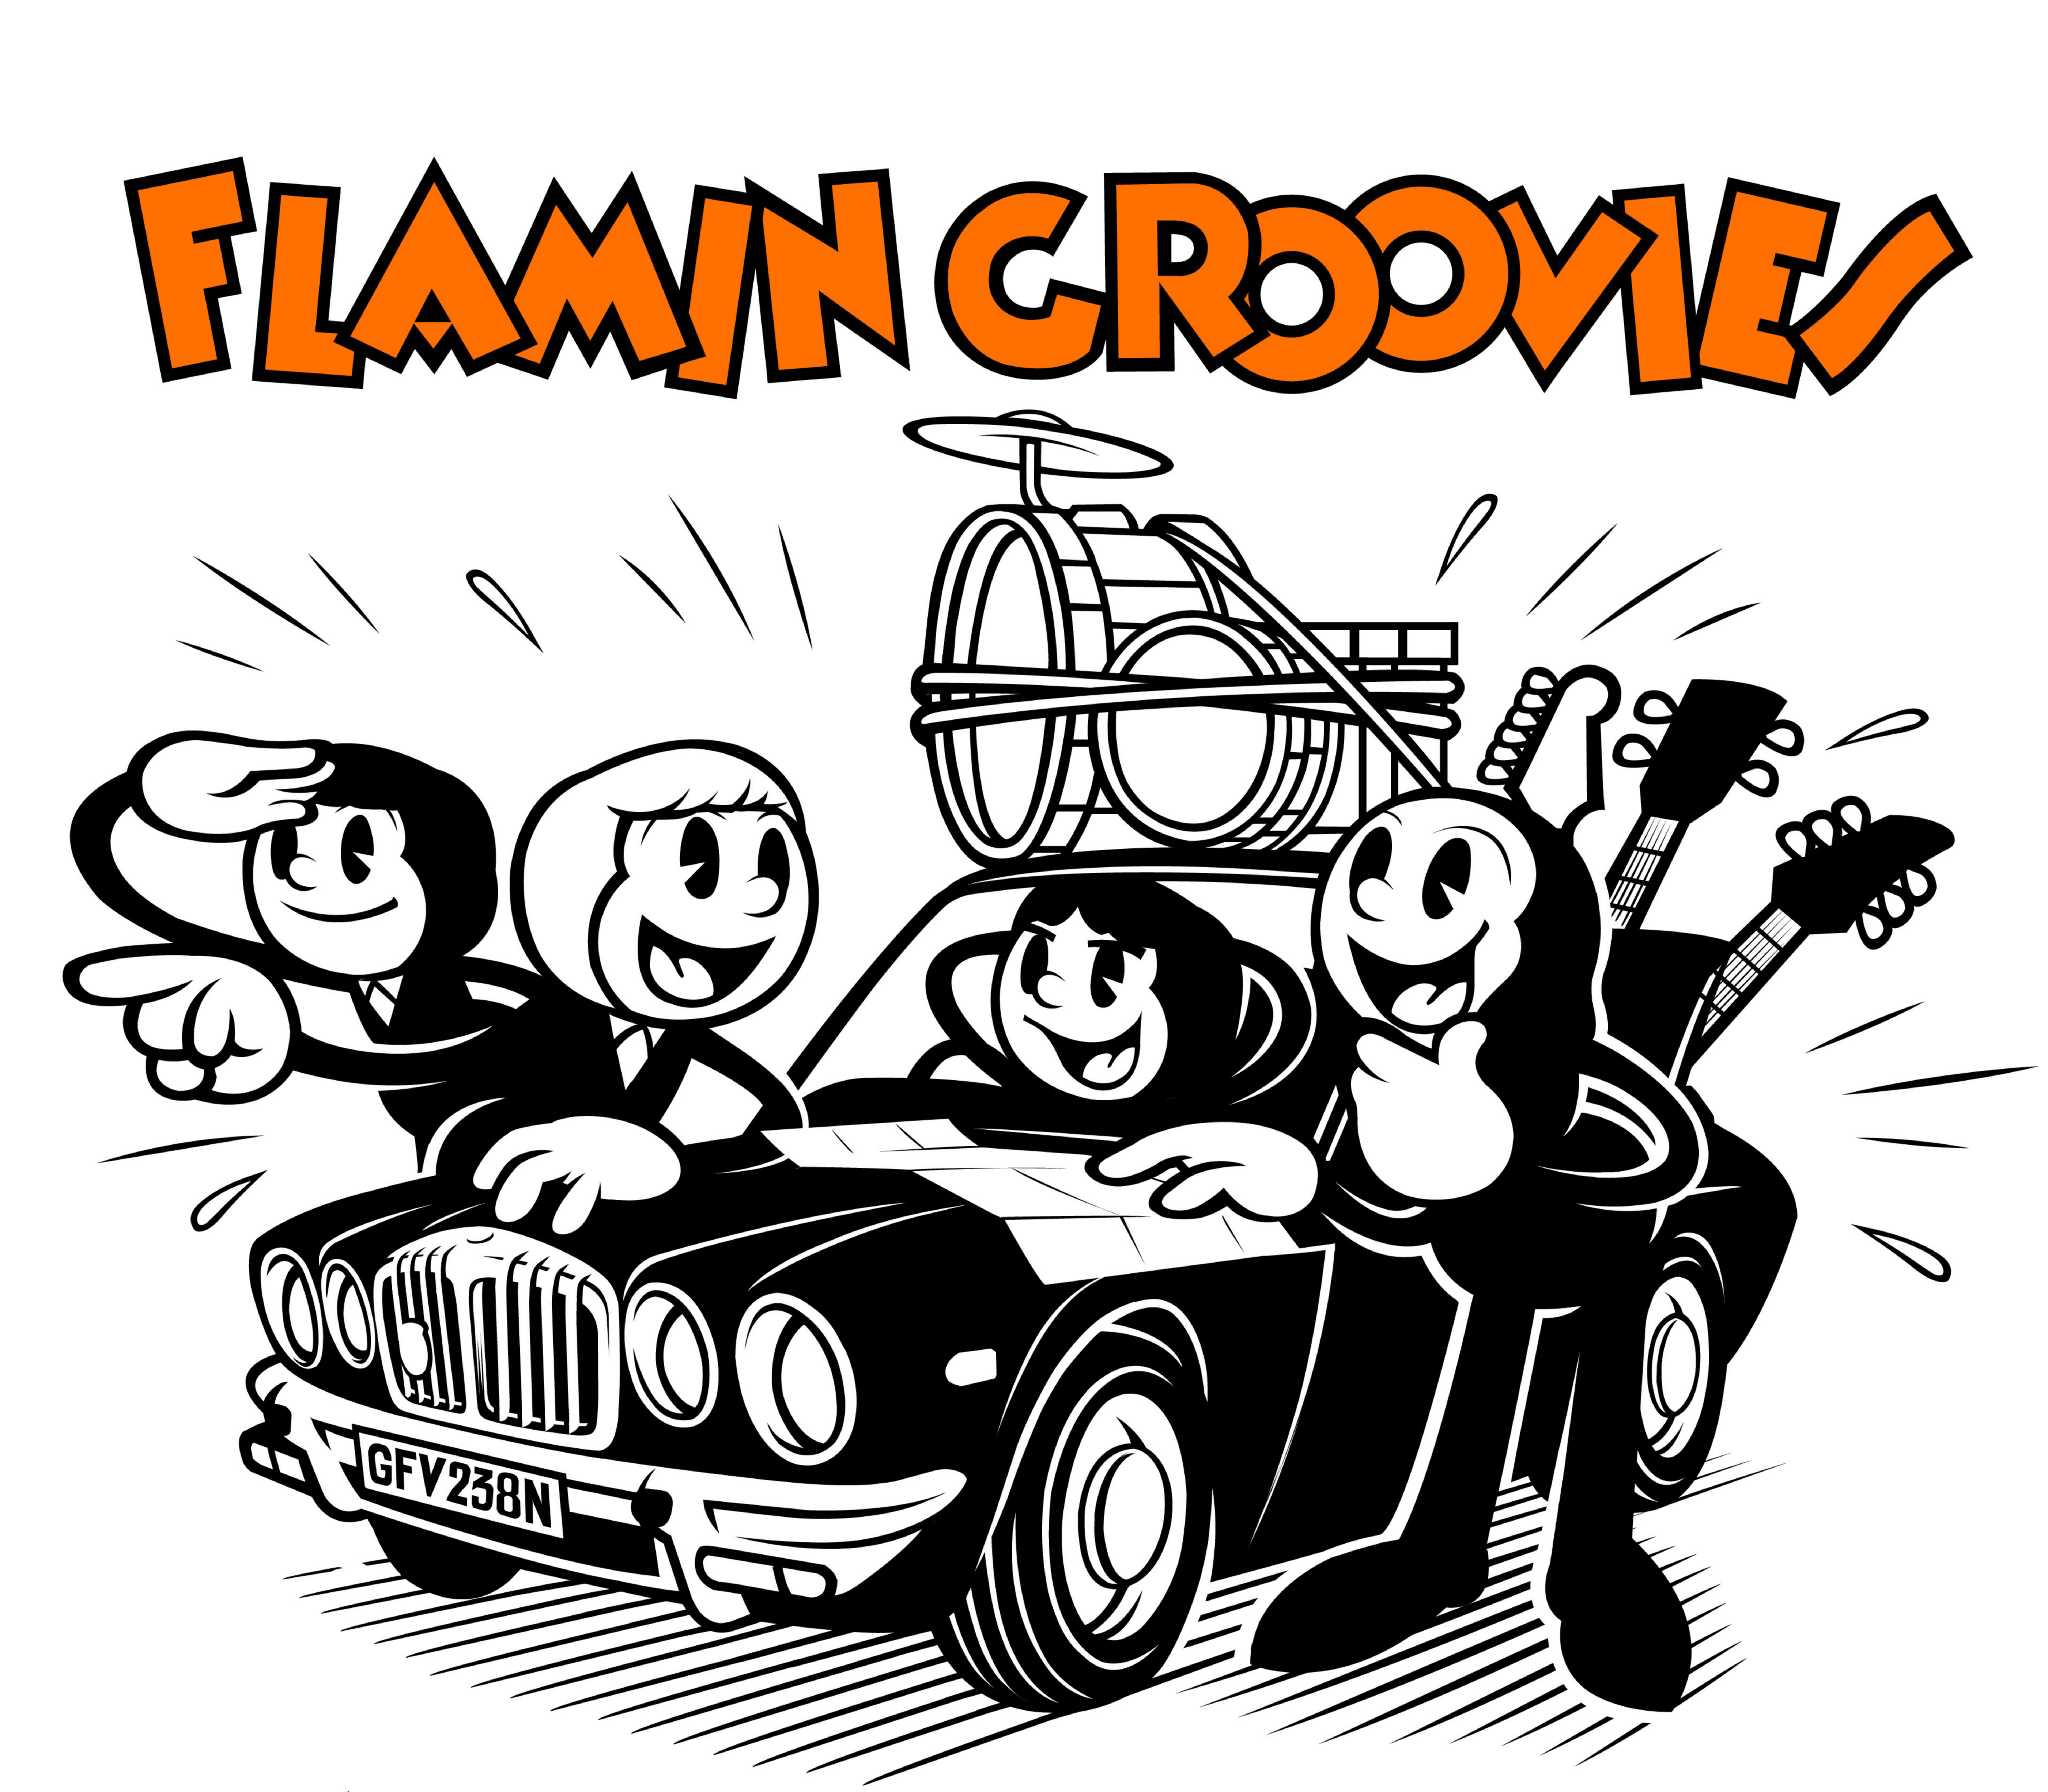 The Flamin Groovies I Cant Explain Little Queenie